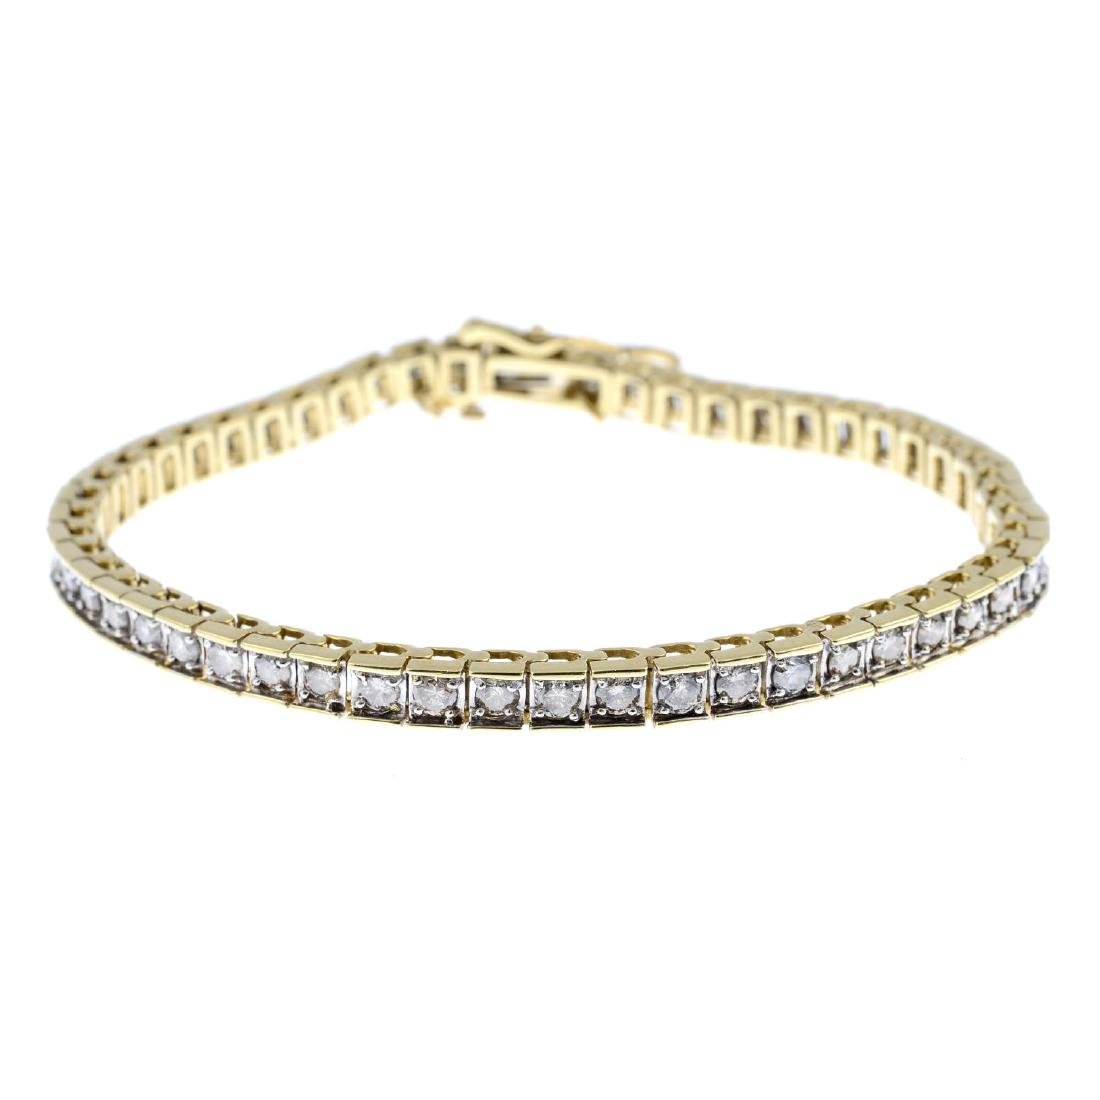 A diamond bracelet. The brilliant-cut diamond line,